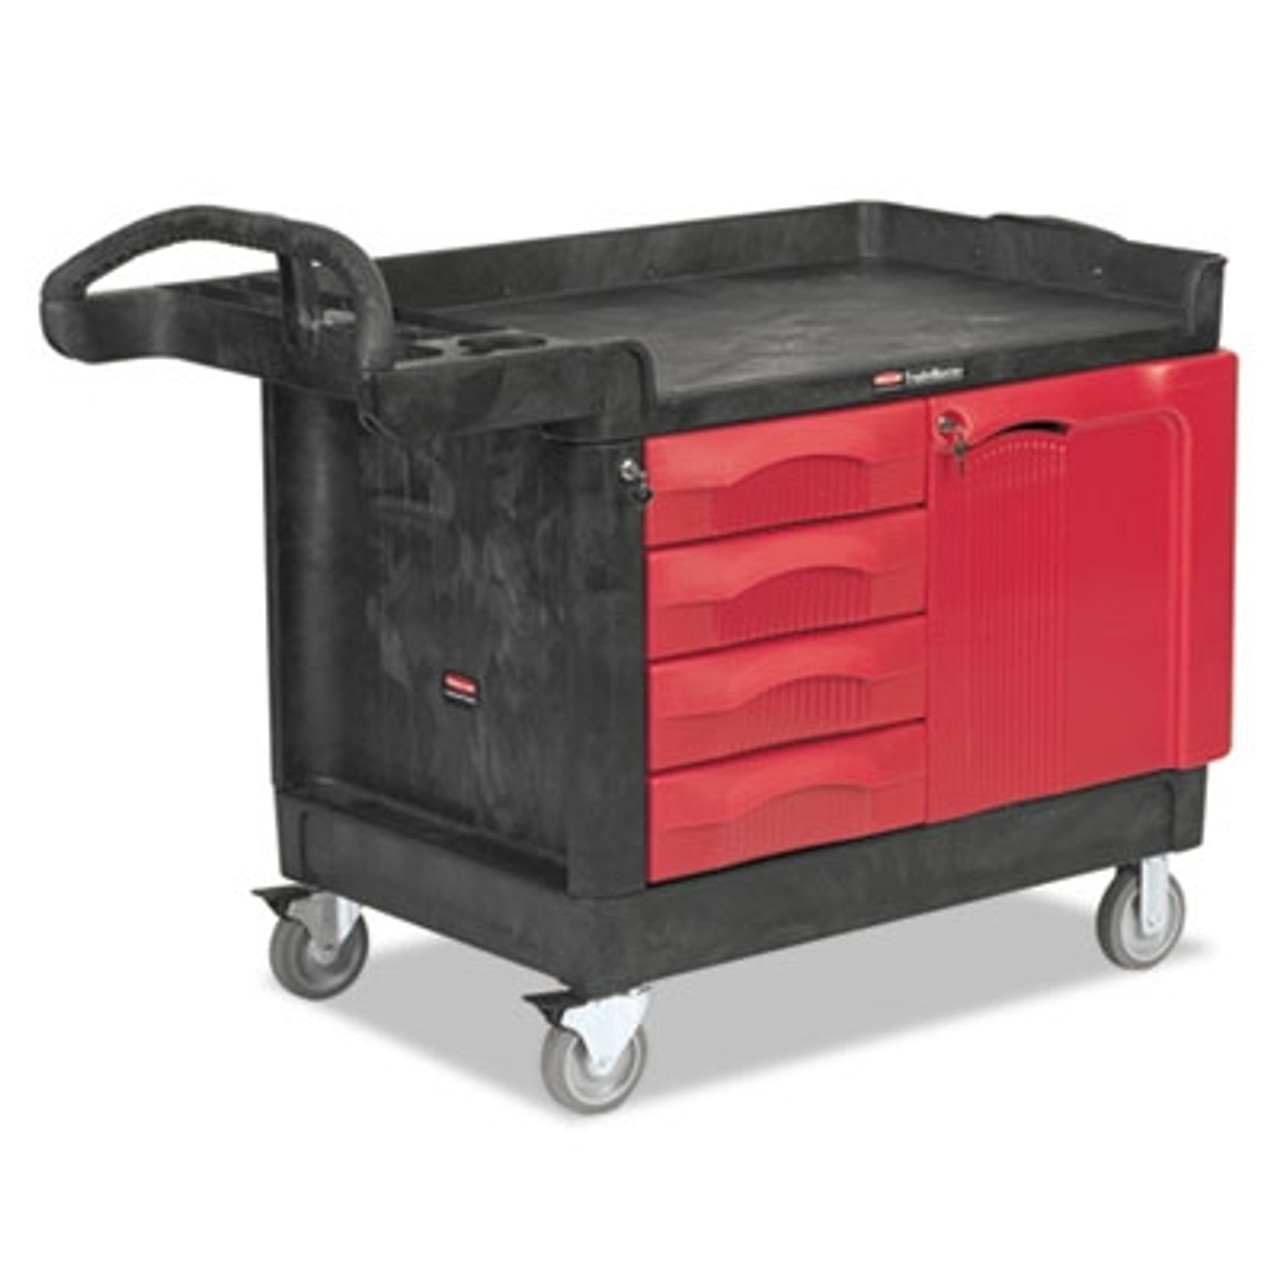 Rubbermaid Commercial TradeMaster Cart, 750-lb Cap., 1 Shelf, 26 1/4w x 49d x 38h, Black